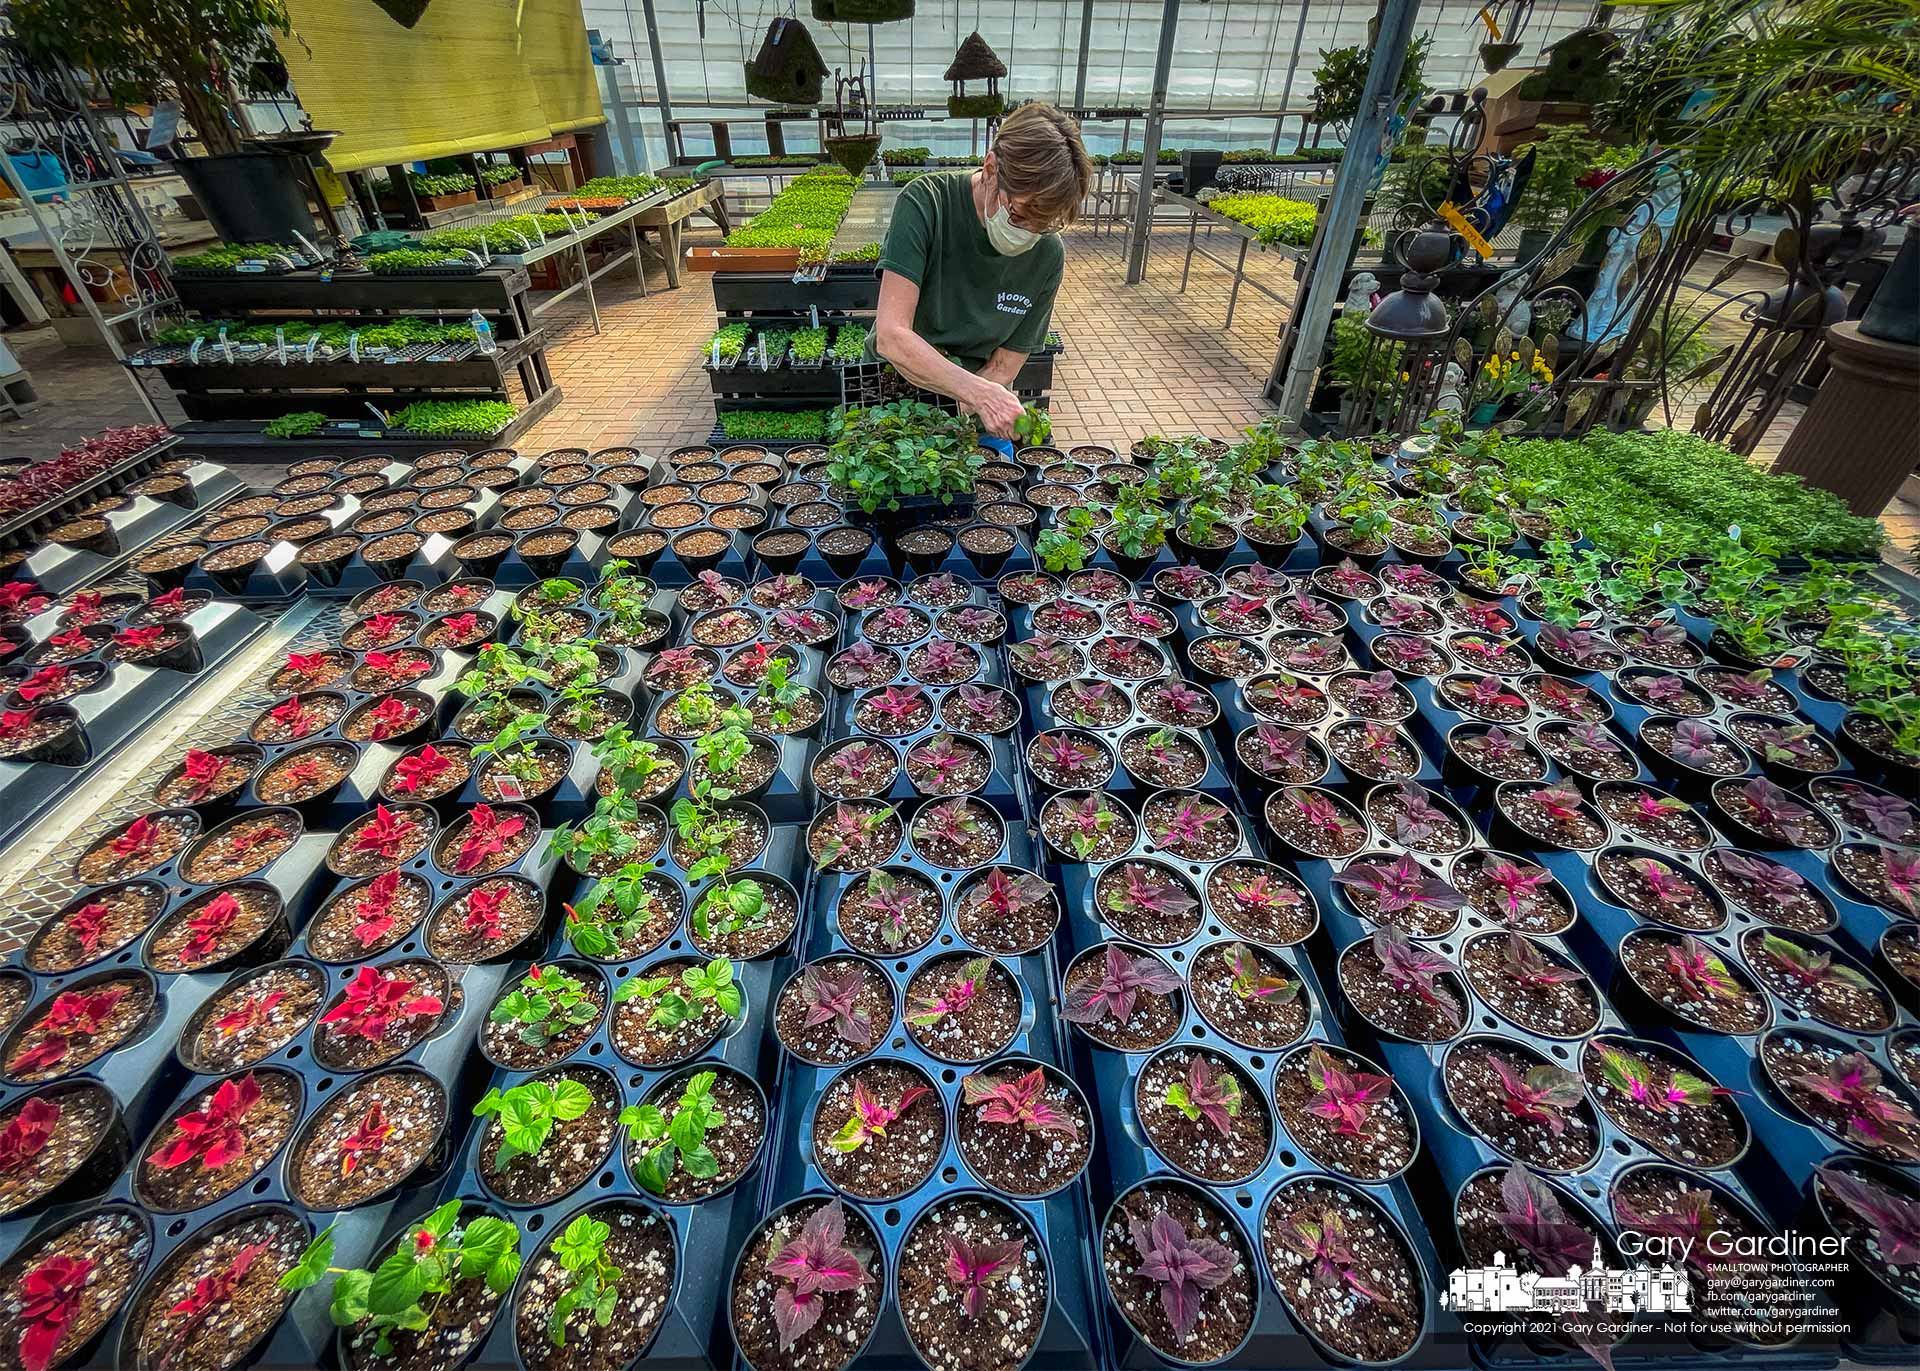 A gardener at Hoover Gardens replants seedlings into larger pots as the garden center prepares for the first day of Spring in about two weeks. My Final Photo for March 5, 2021.